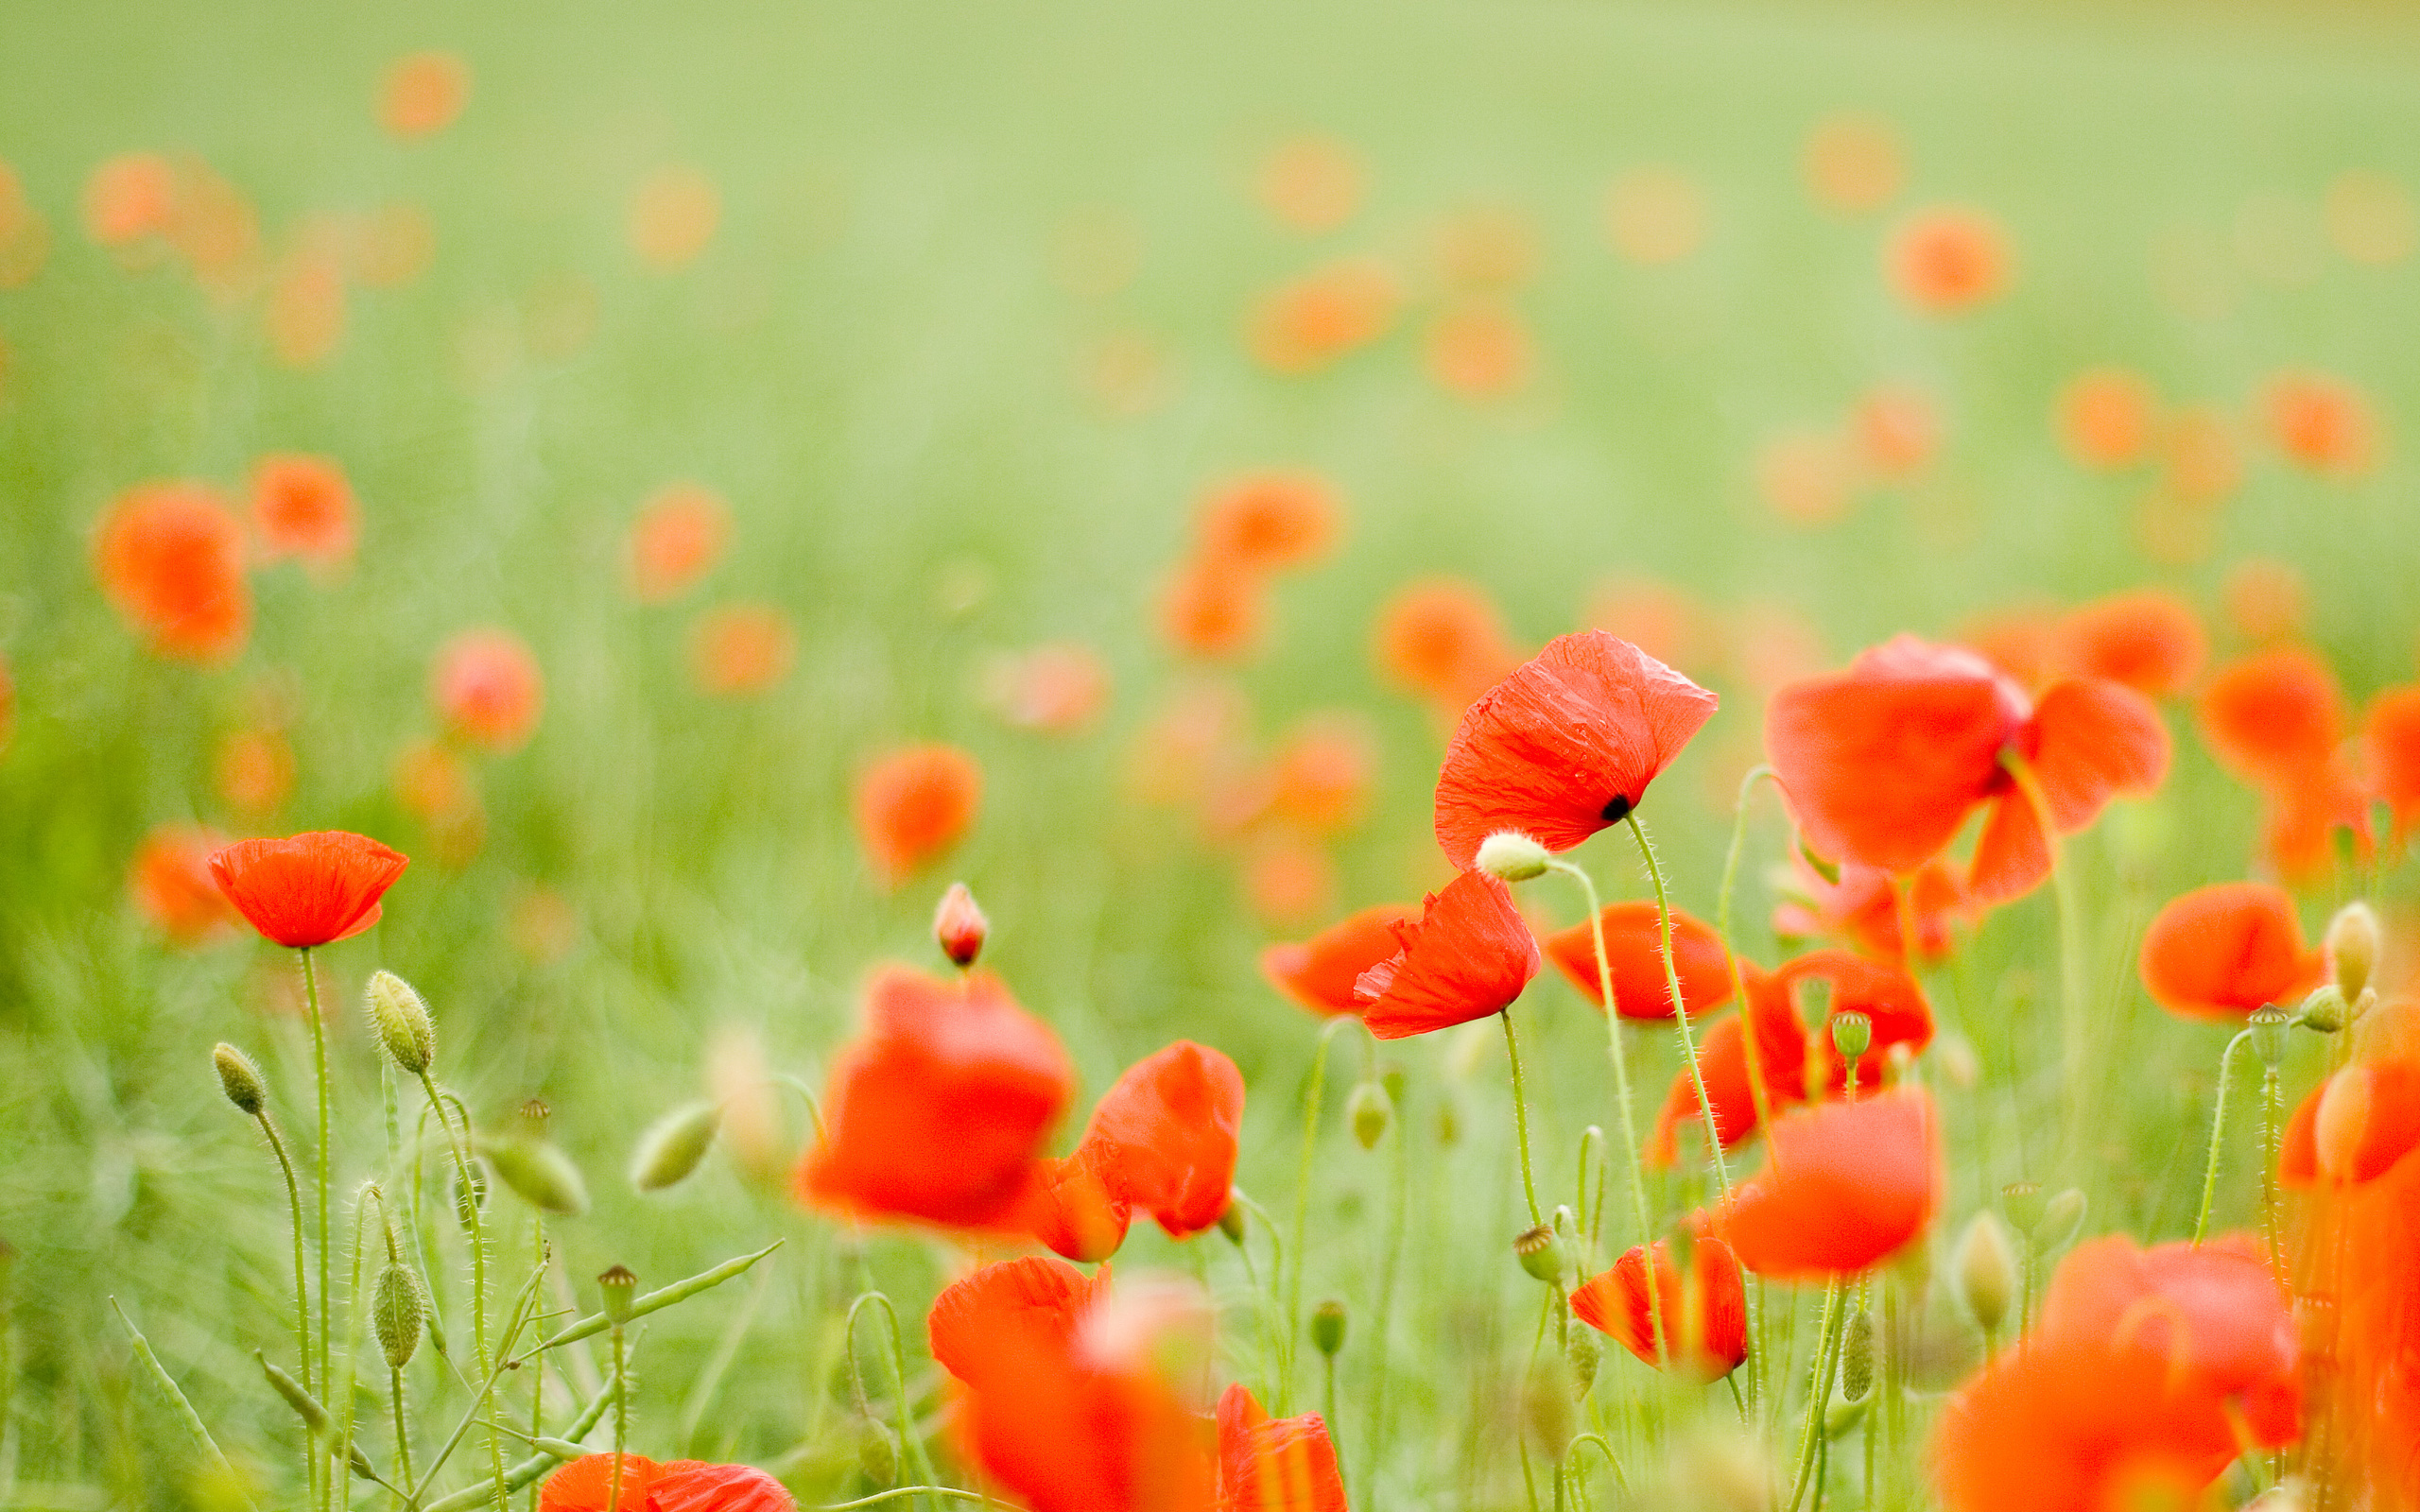 poppies wallpapers 22 hd - photo #1